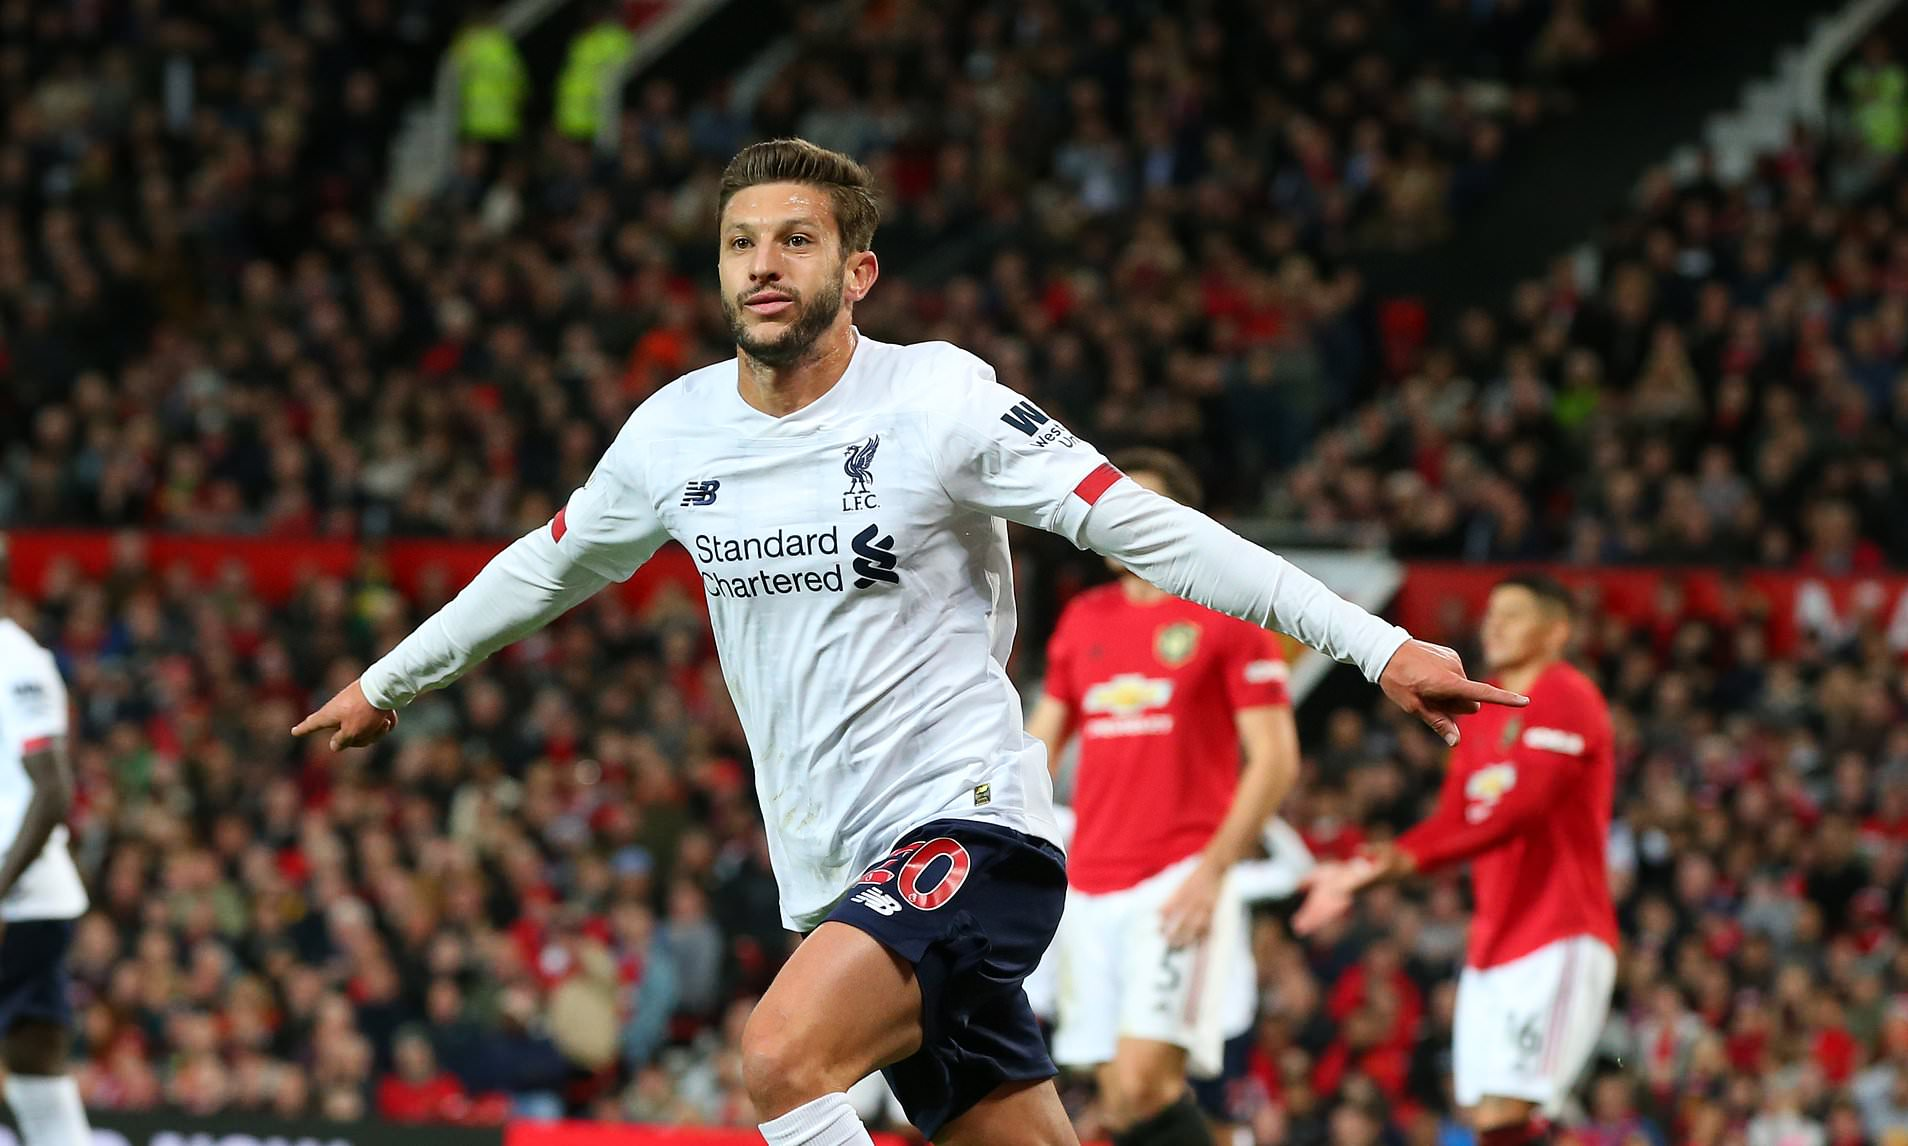 Liverpool hold Man Utd to move 6 points clear on top of EPL table